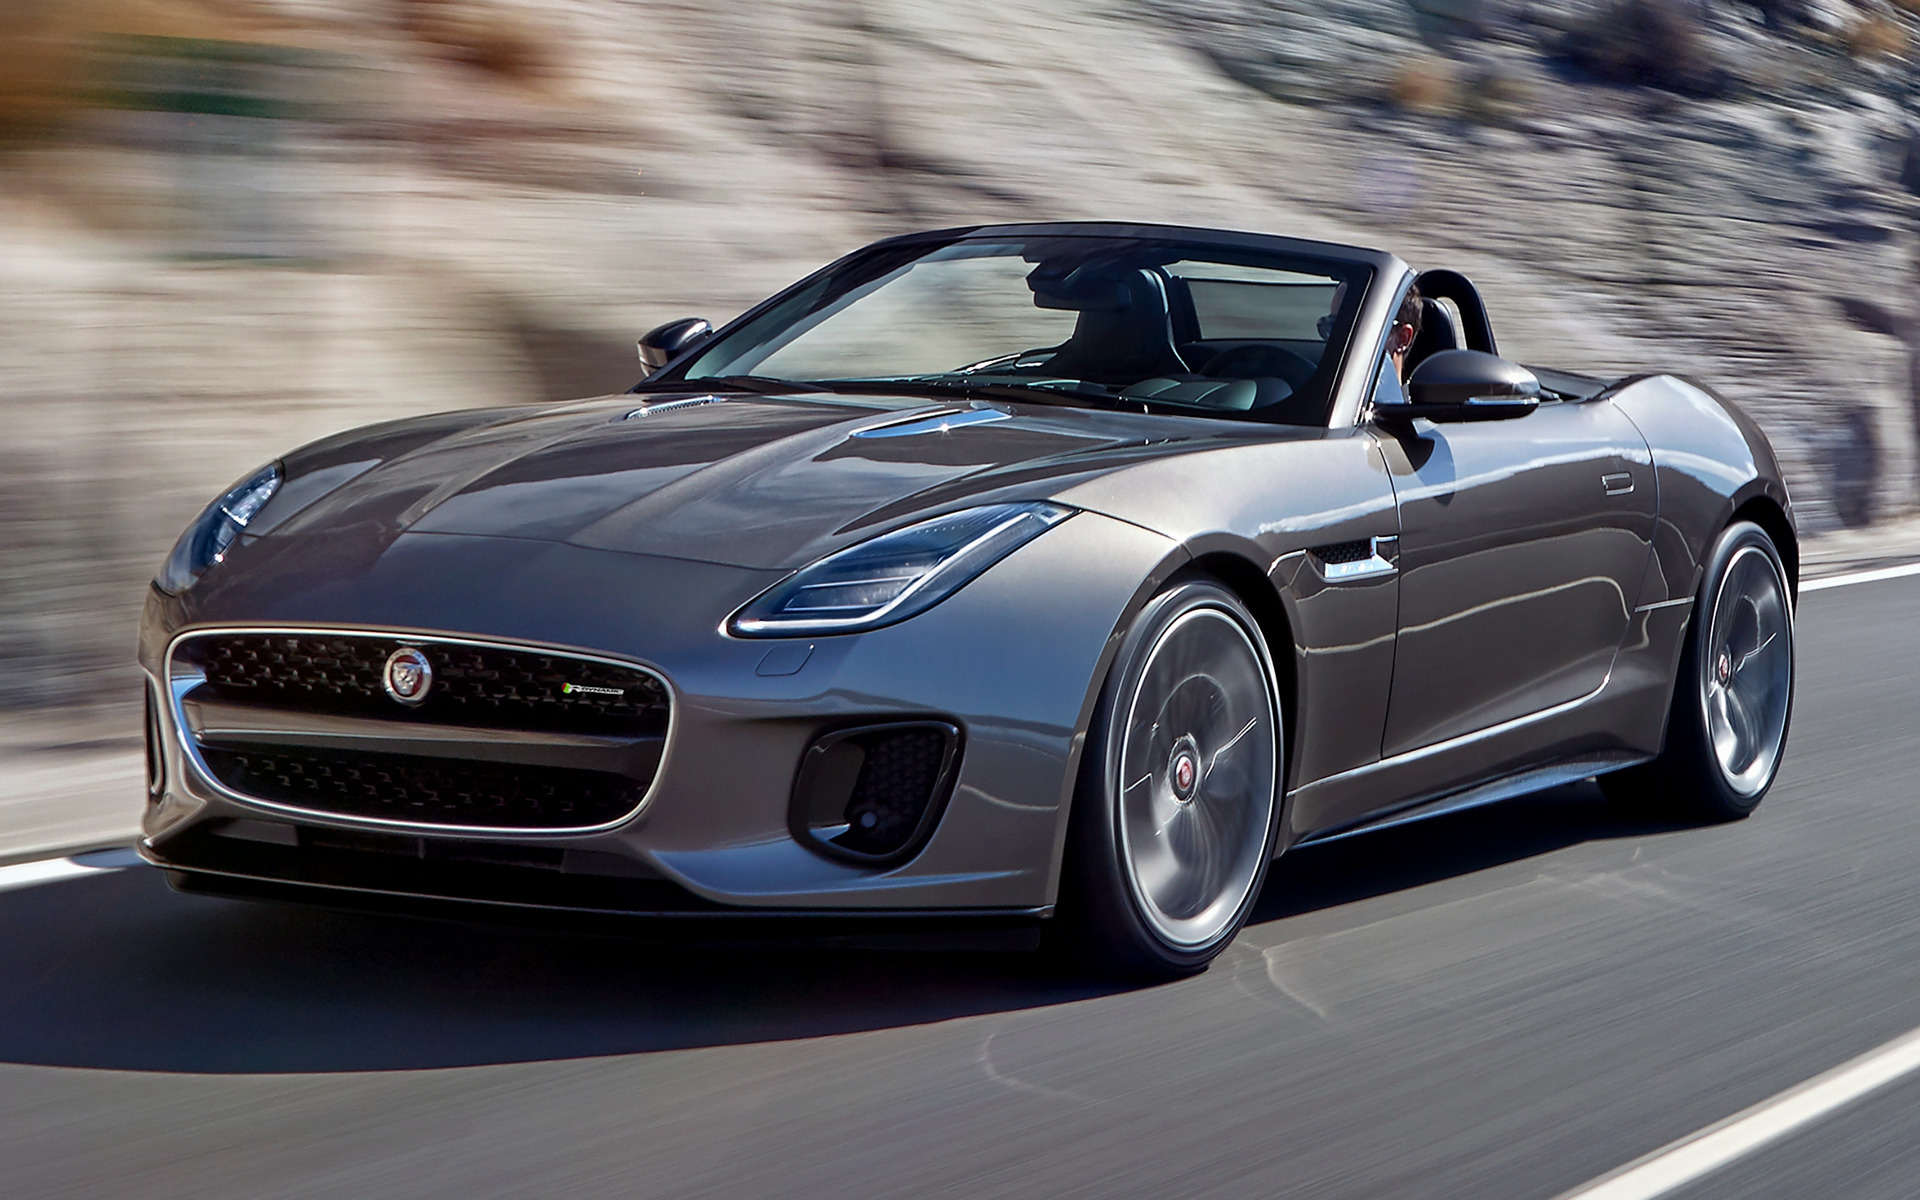 2016 Cadillac Convertible >> 2017 Jaguar F-Type Convertible R-Dynamic - Wallpapers and ...